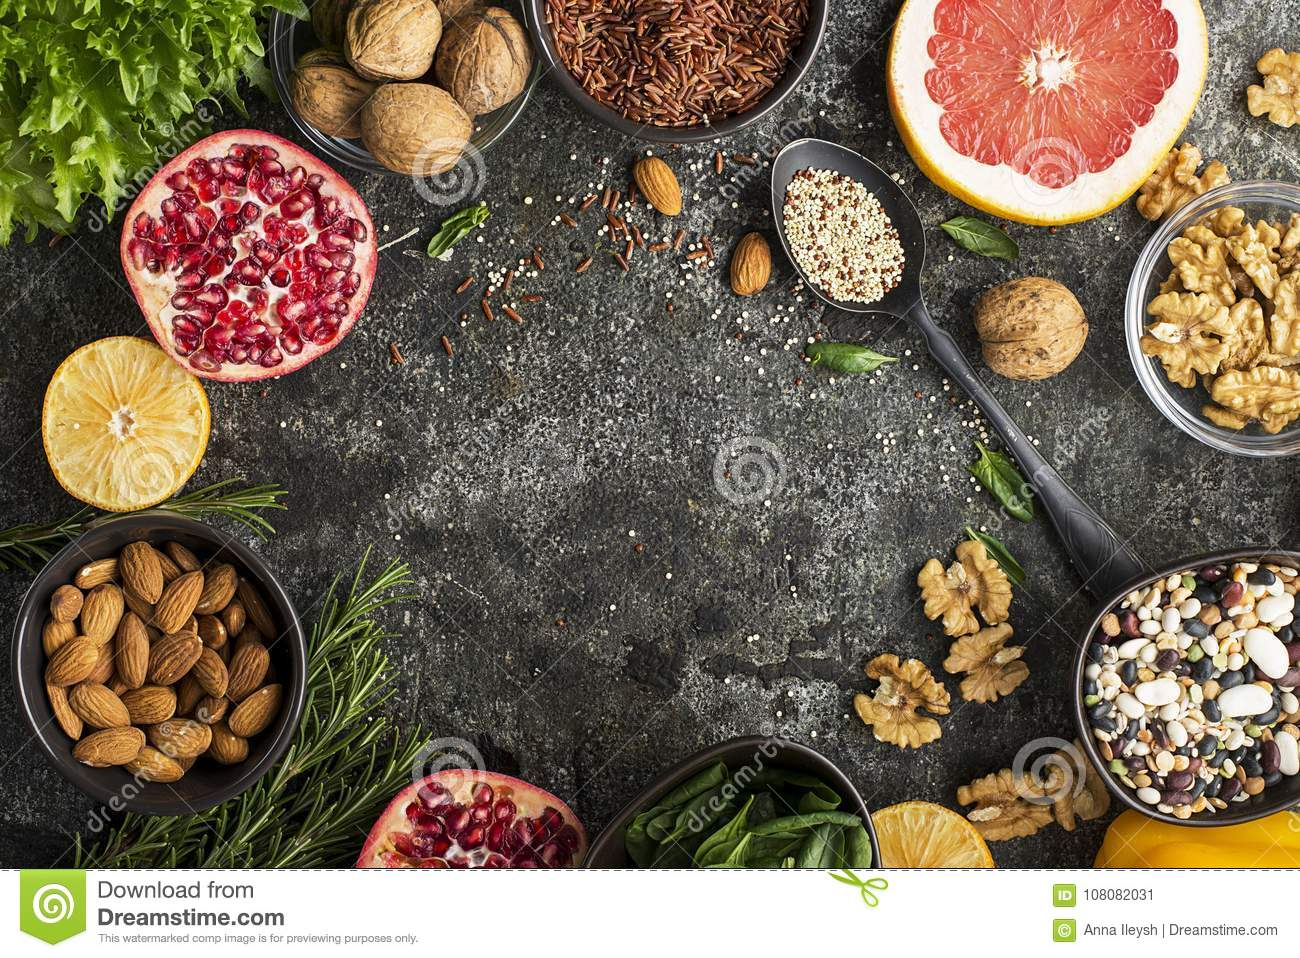 Ingredients of a healthy diet for drawing up a meal plan: wild brown rice, quinoa, spinach, legumes, oranges, grapefruit